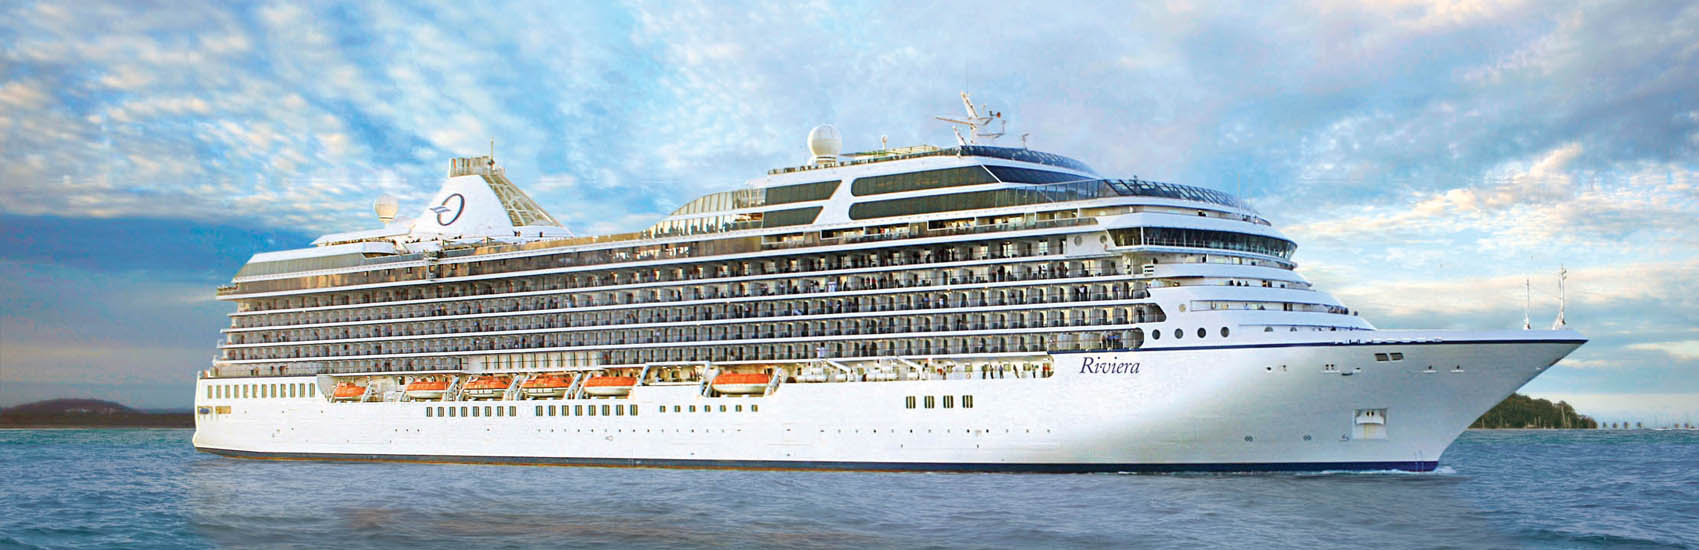 Choose Your Caribbean Adventure with Oceania Cruises